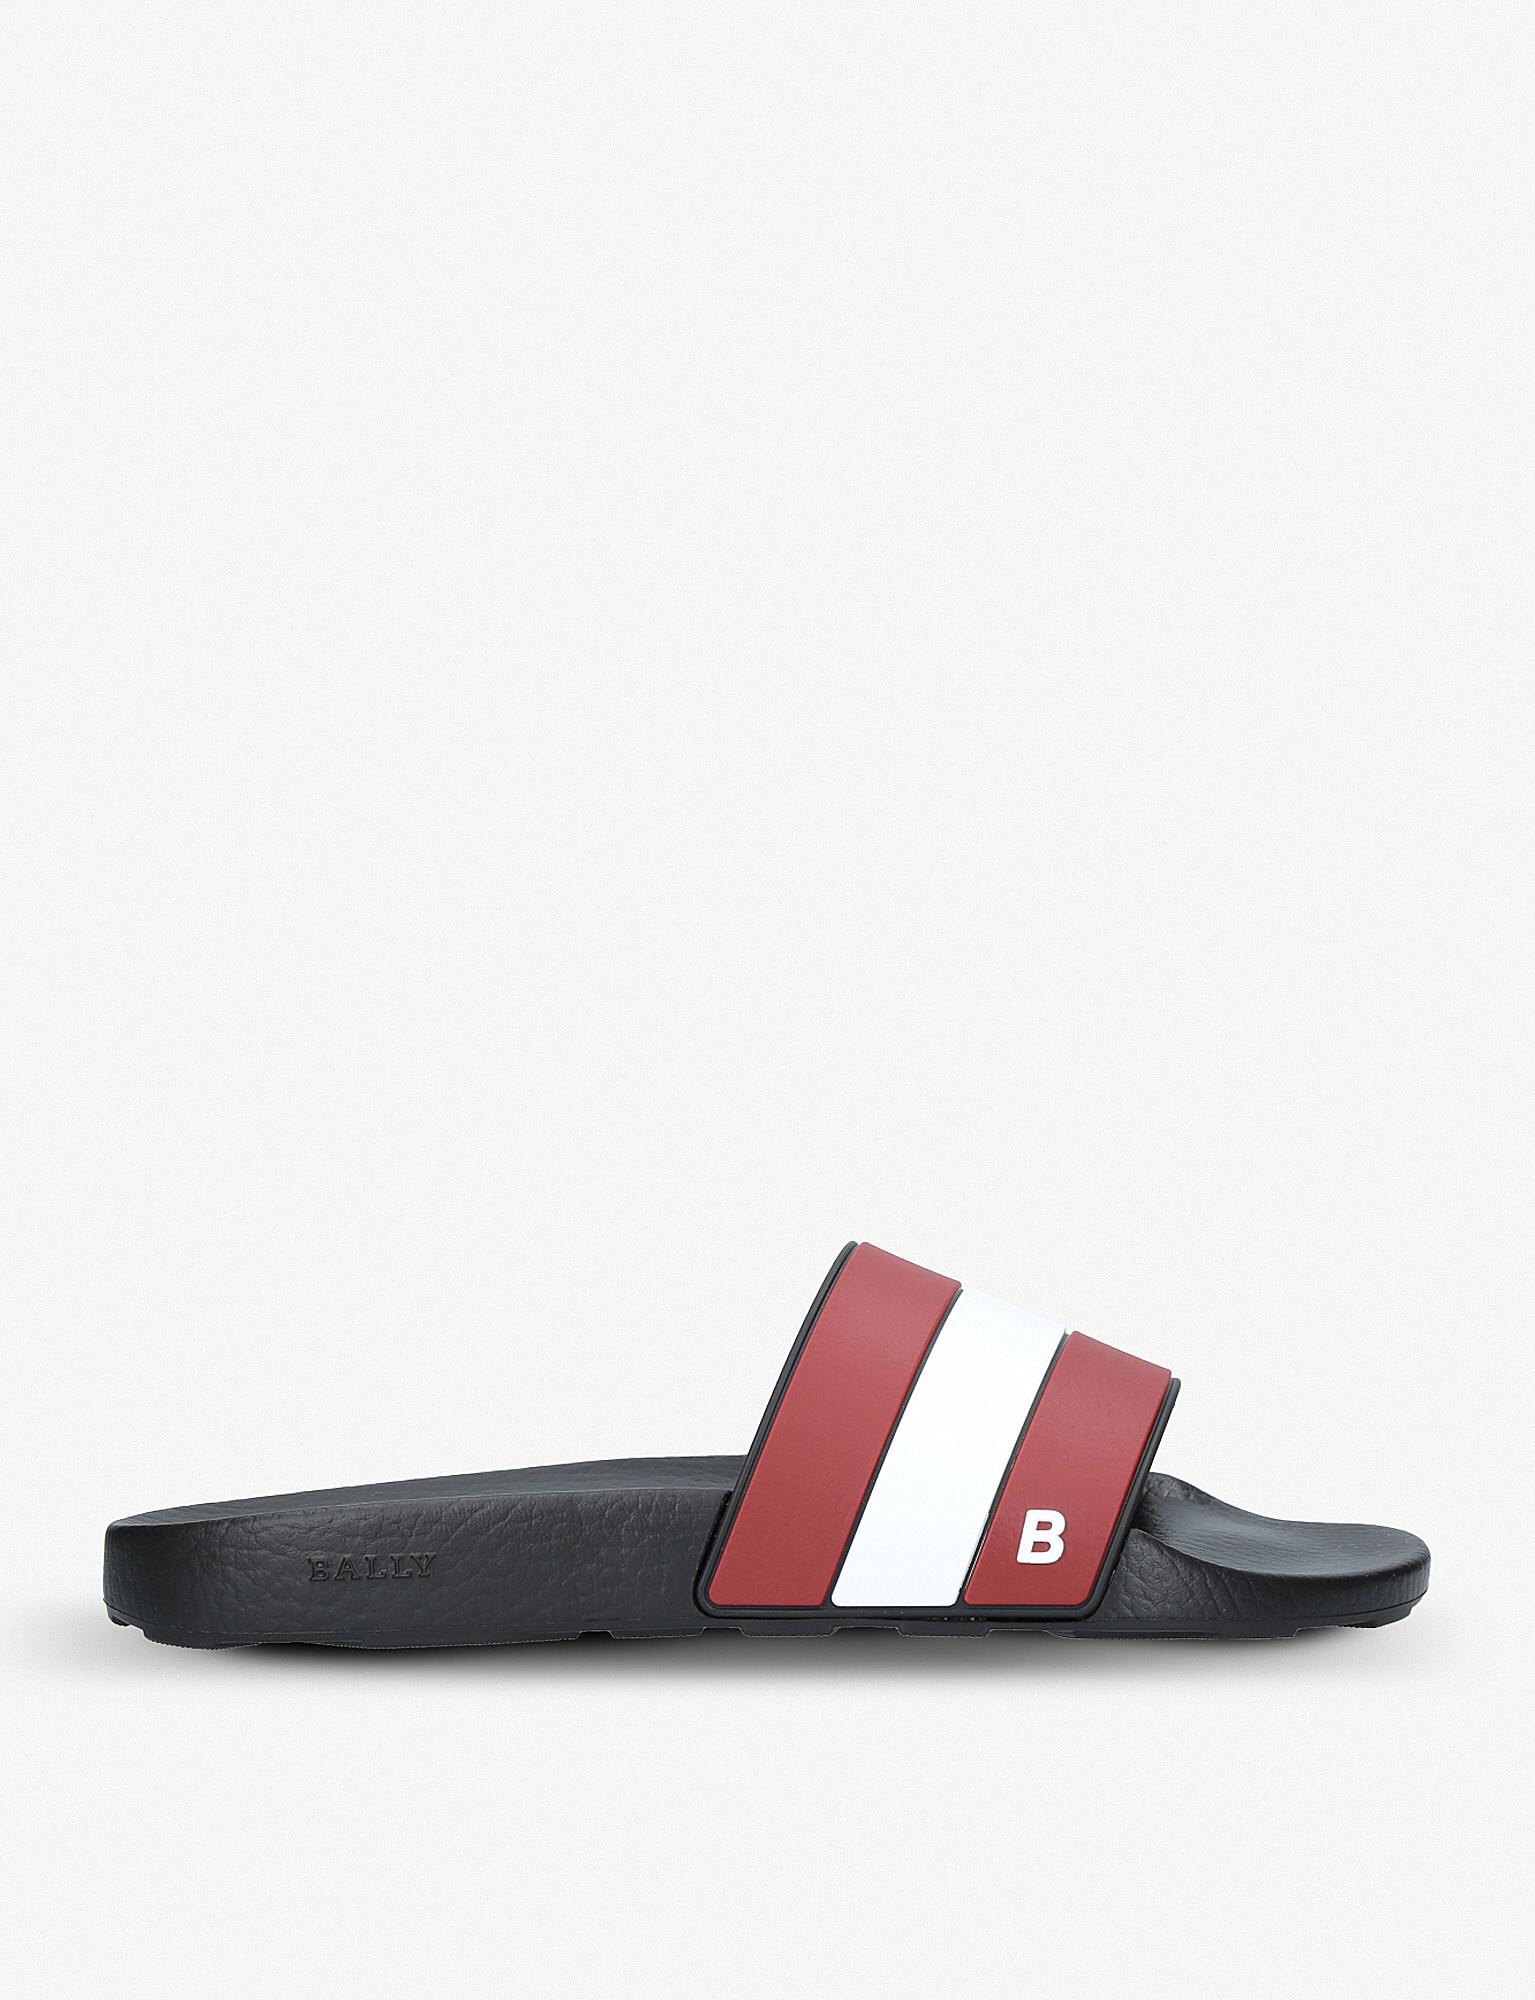 28e82450a3c Lyst - Bally Sleter Stripe Rubber Sliders in Red